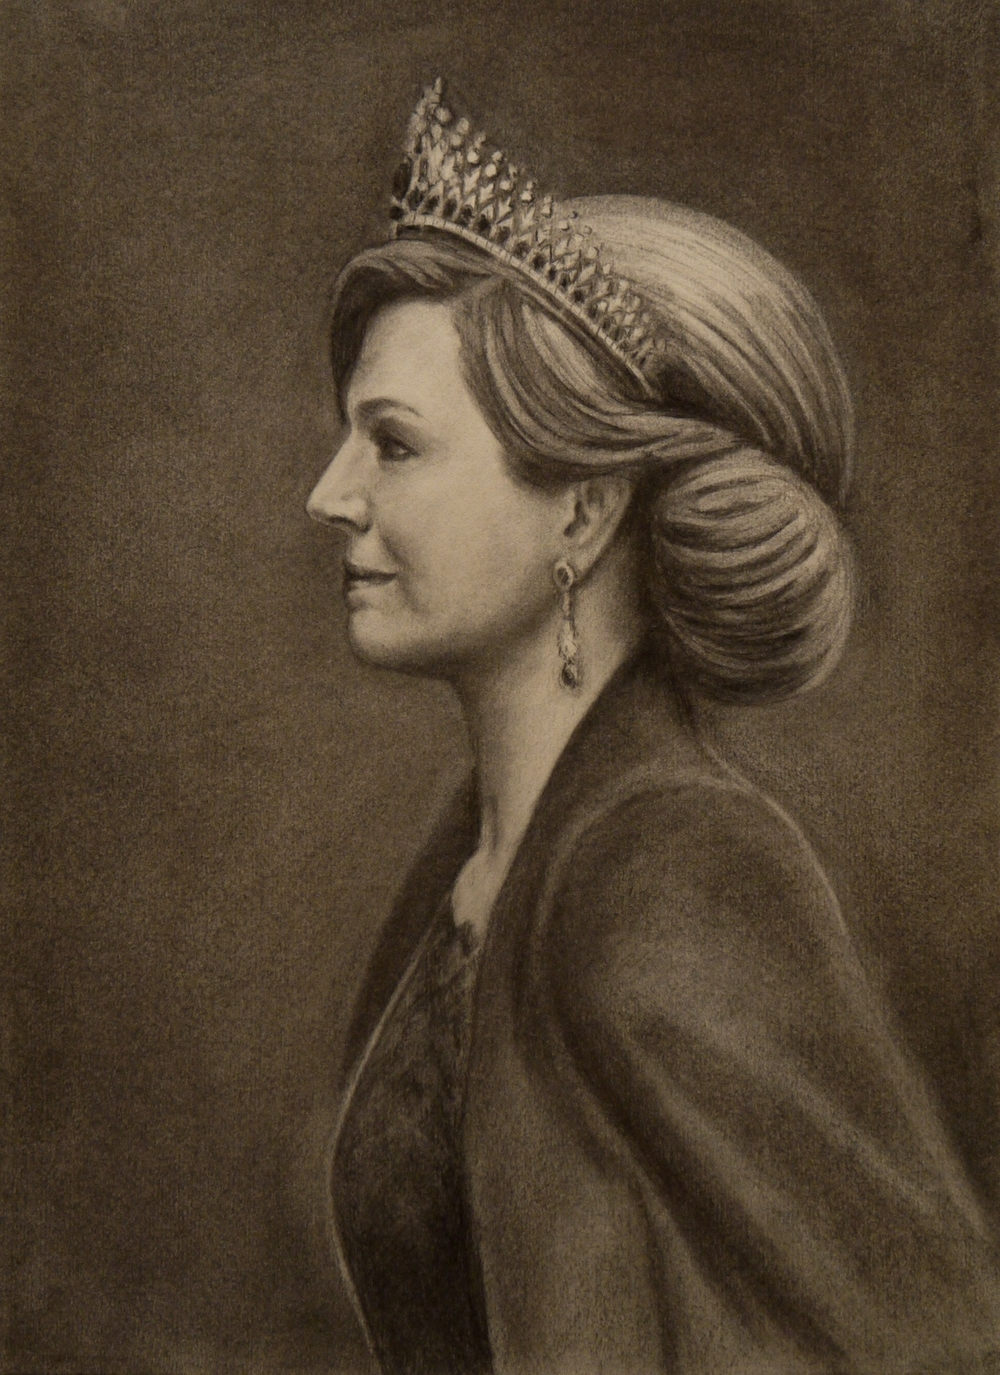 HM Queen Máxima, Princess of the Netherlands, Princess of Orange-Nassau